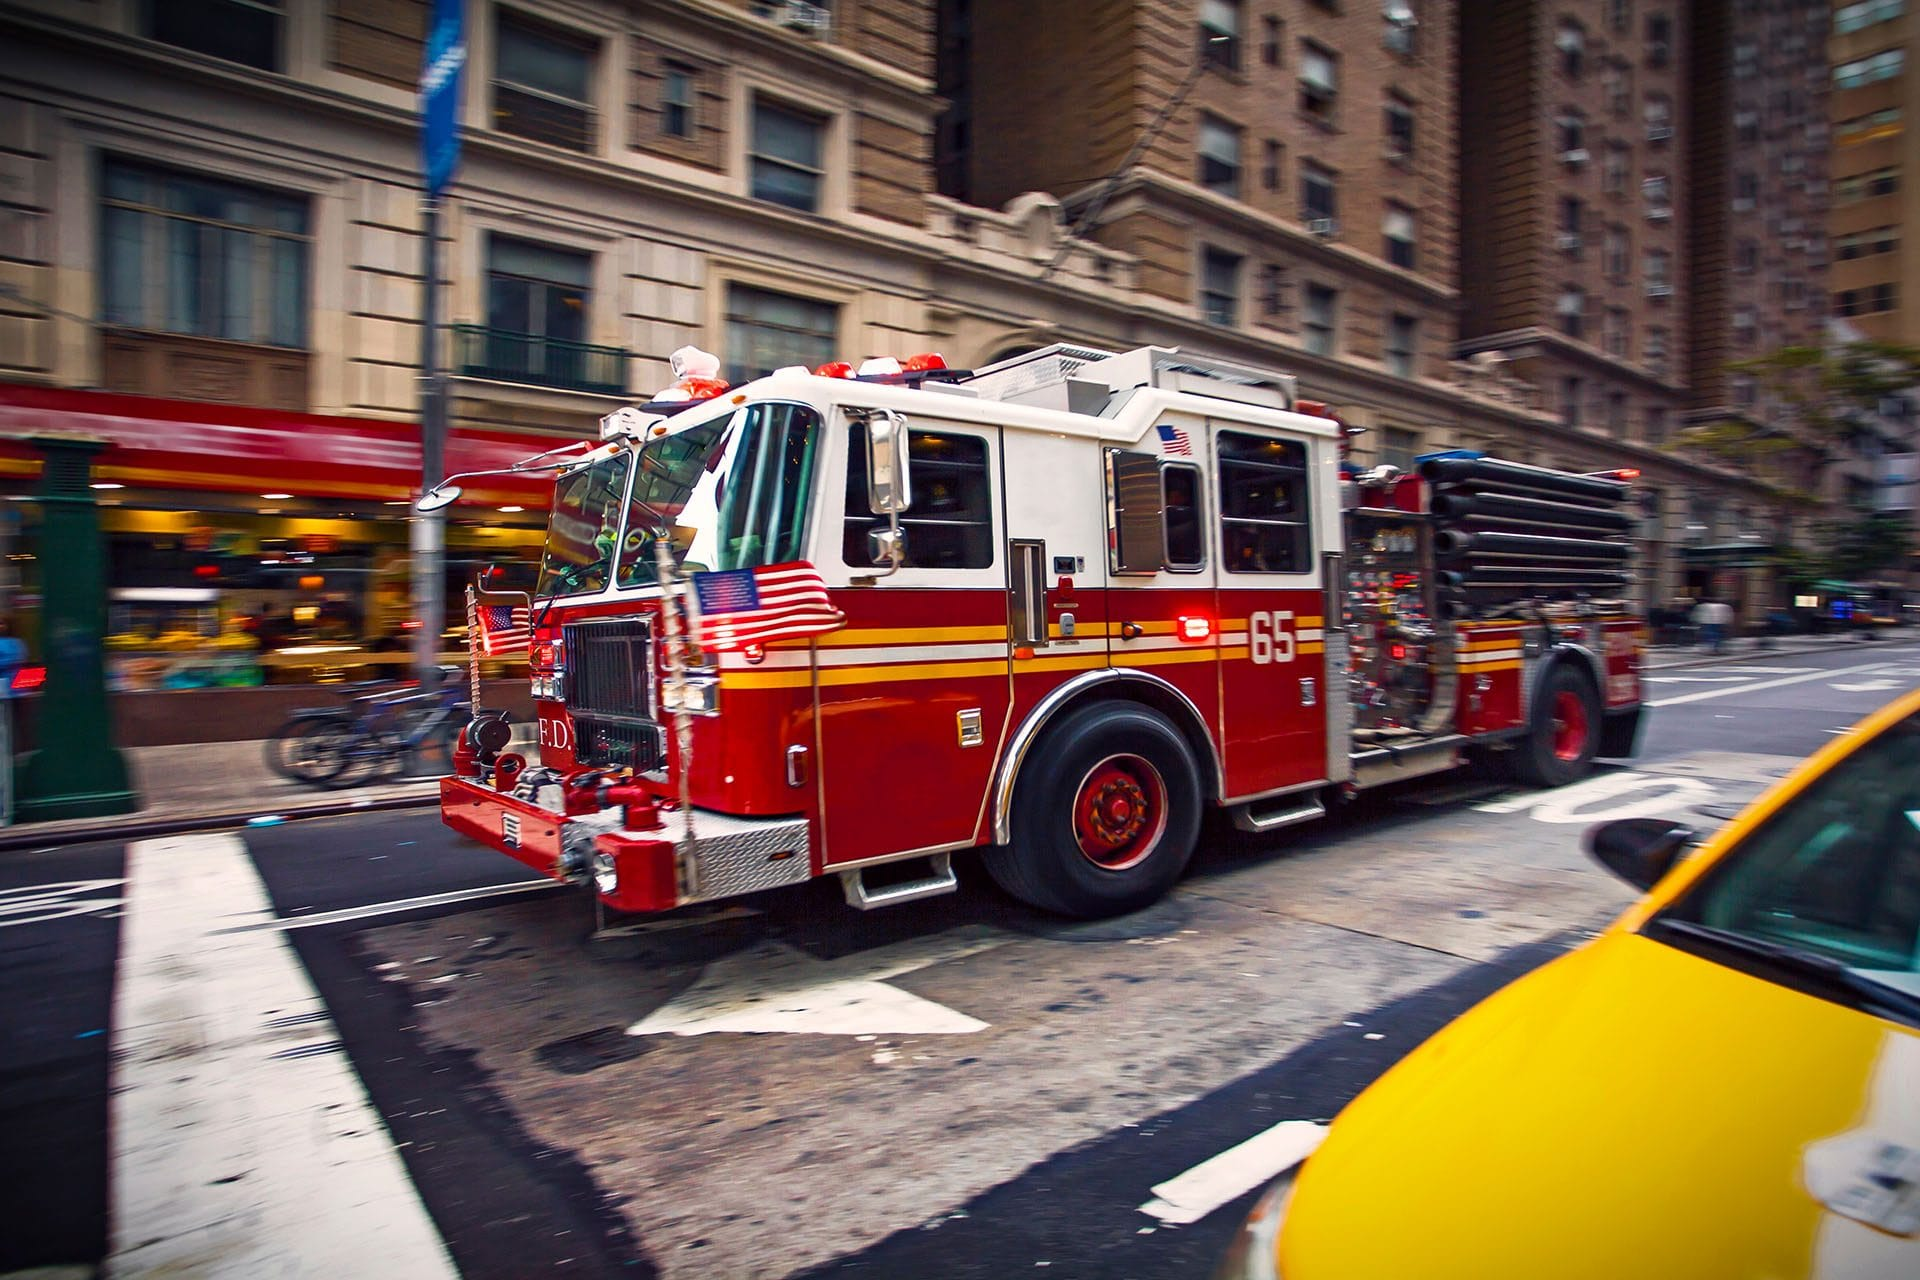 Fire Truck on city streets